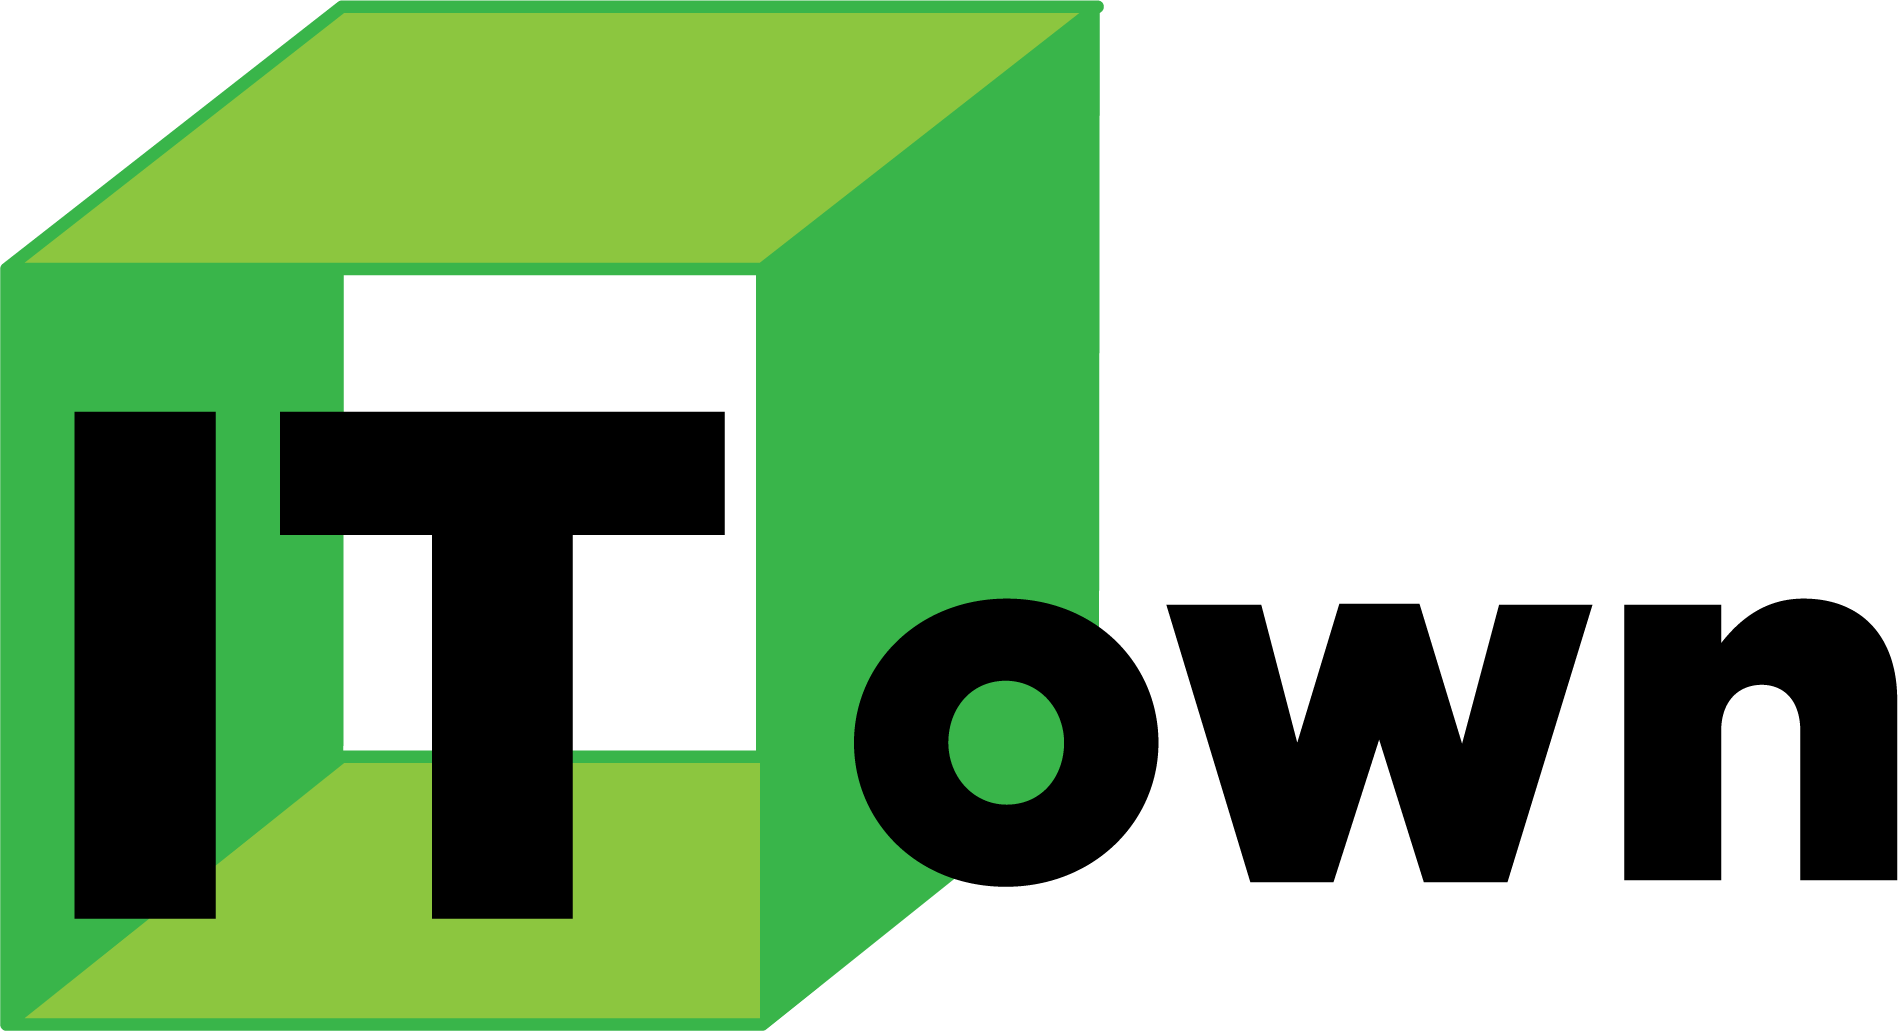 ЖК ITown